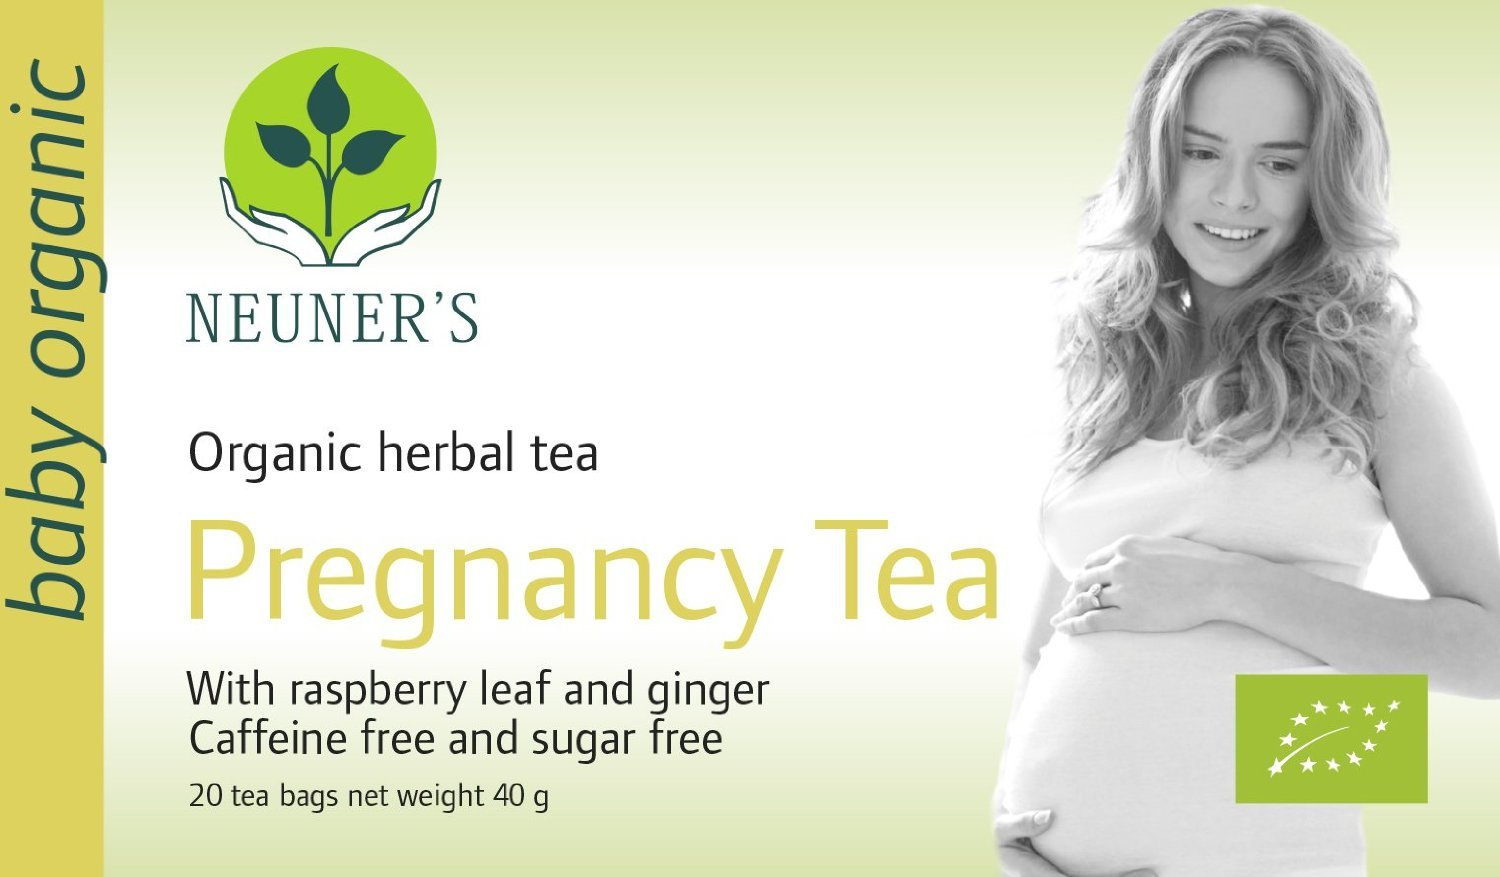 (Pack Of 2) - Organic Pregnancy Tea | NEUNER'S NEUNER'S